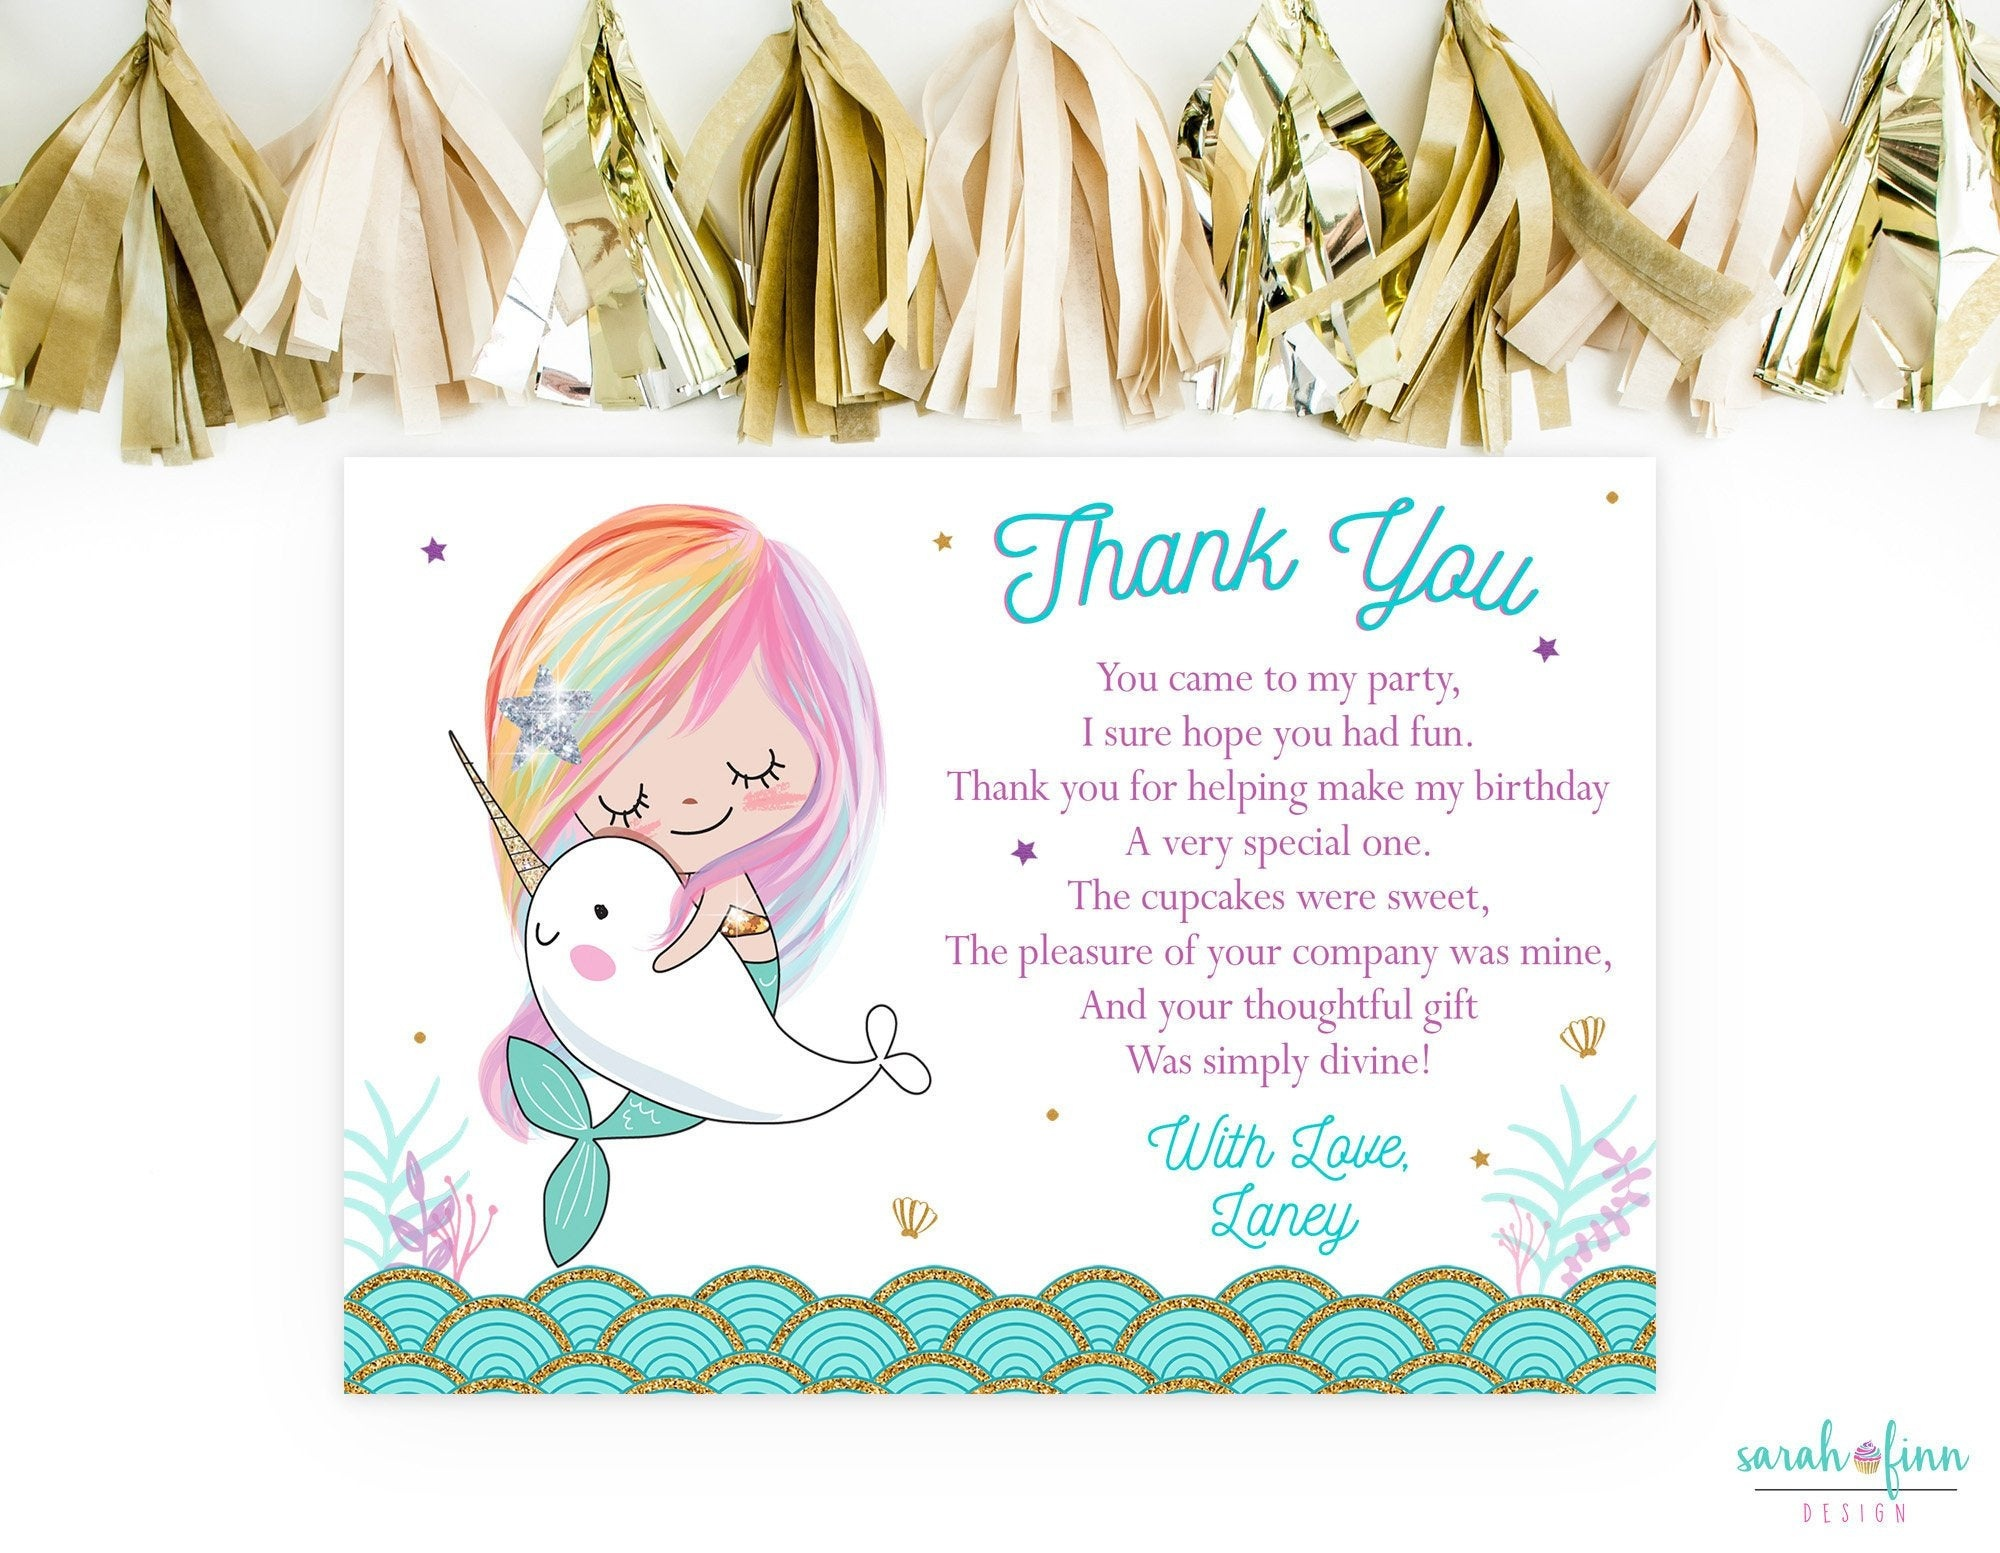 Mermaid Thank You Card Narwhal Birthday Mermaid Party Narwhal | Etsy - Free Printable Mermaid Thank You Cards